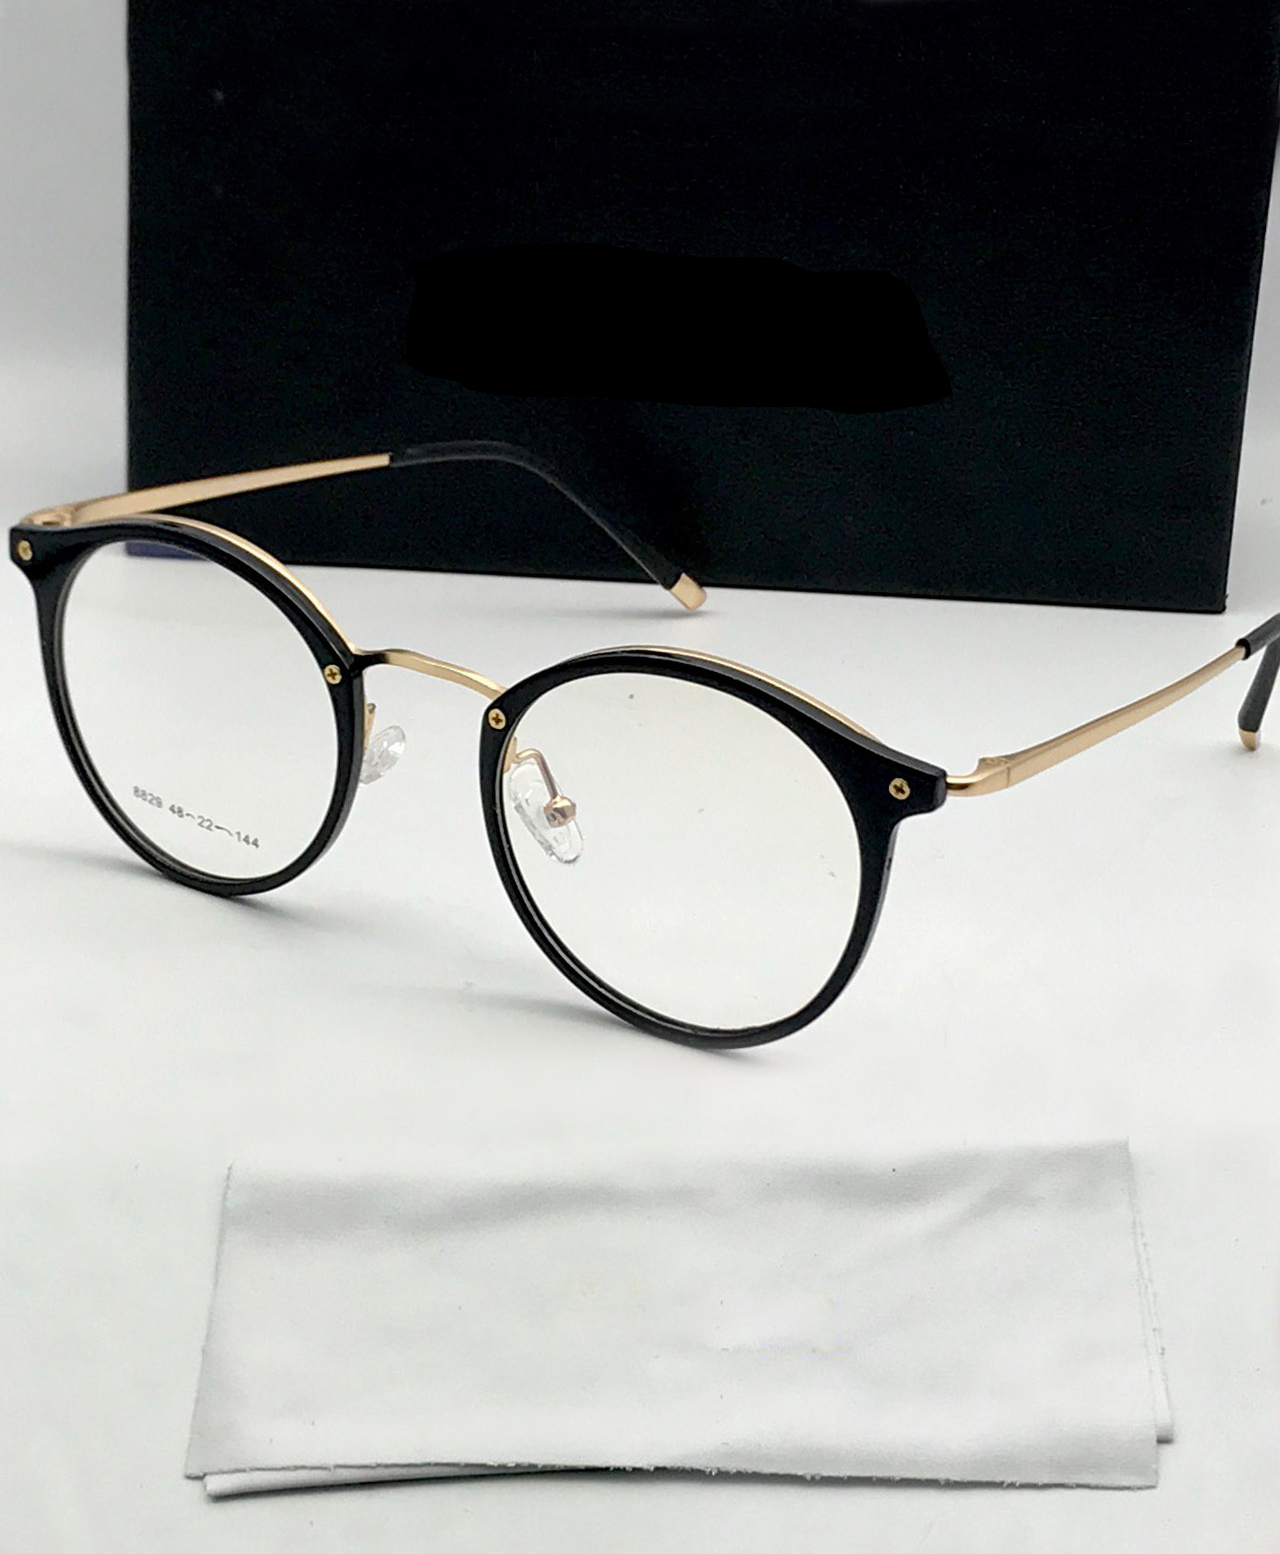 Lunette de vue CL Fashion - Noir